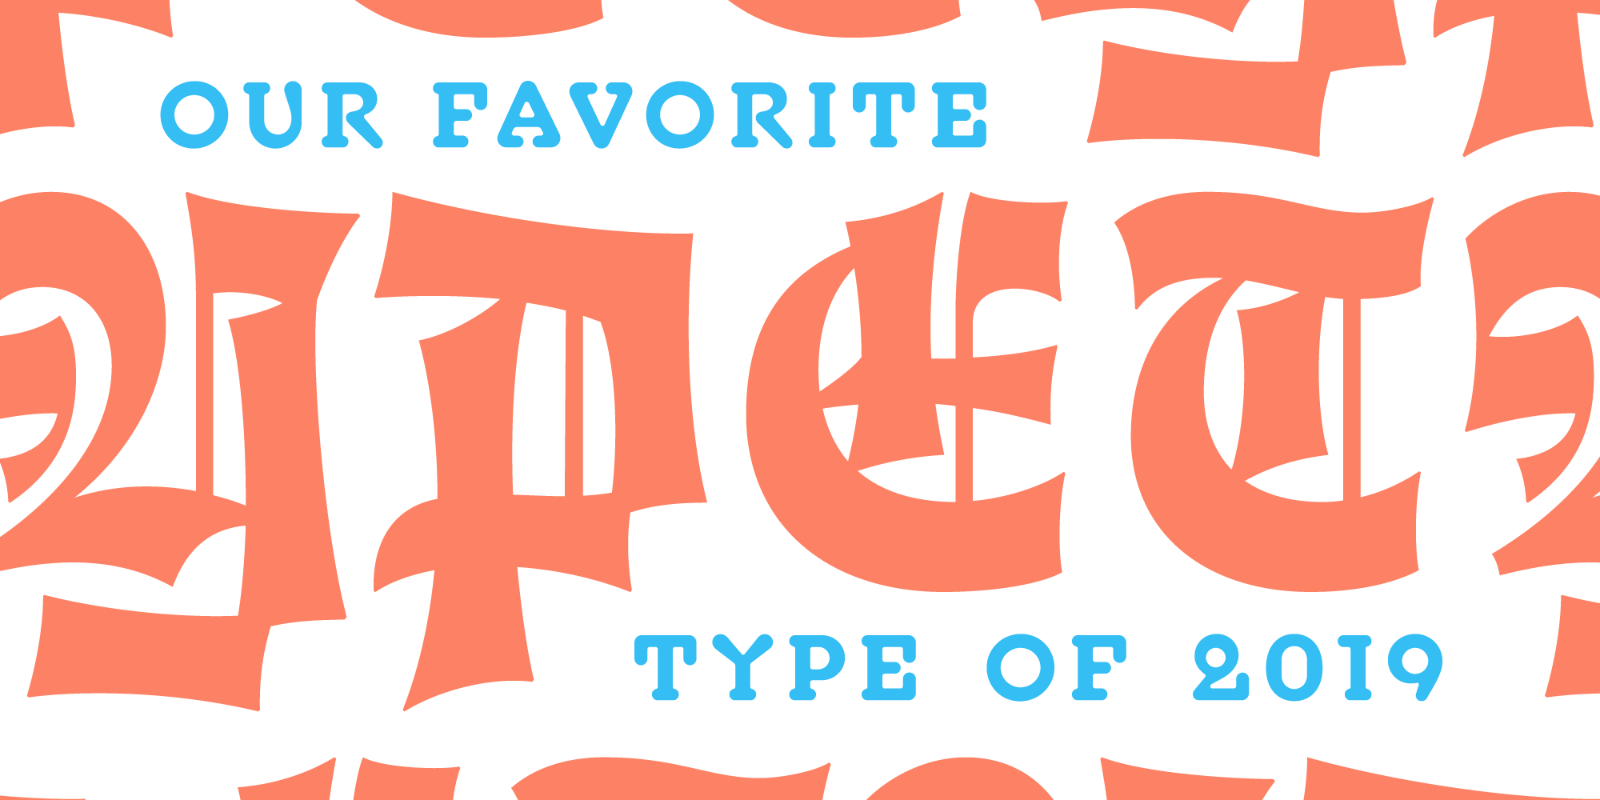 our-favorite-fonts-of-2019.png.3ee33e0b1c311110357d7589adeade78.png